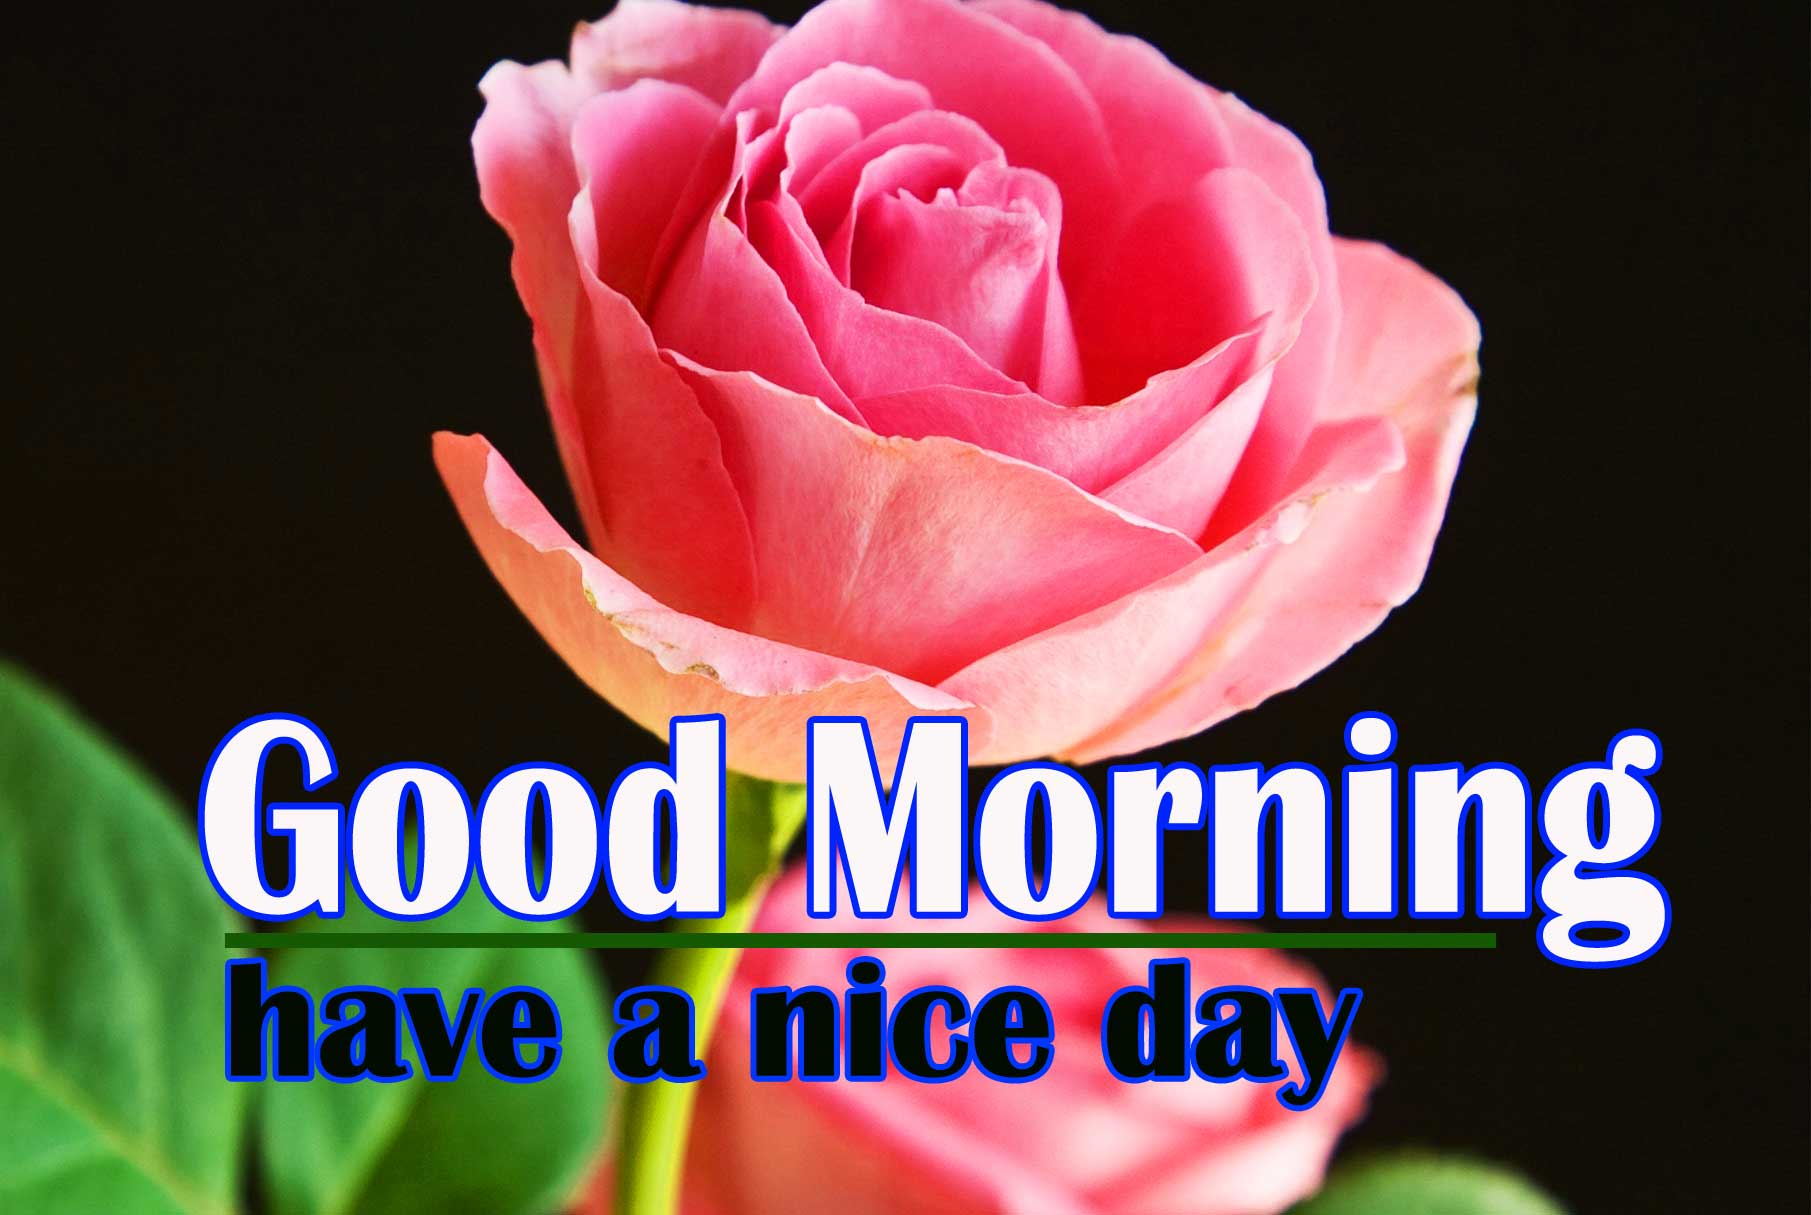 Special Good Morning Pics Free